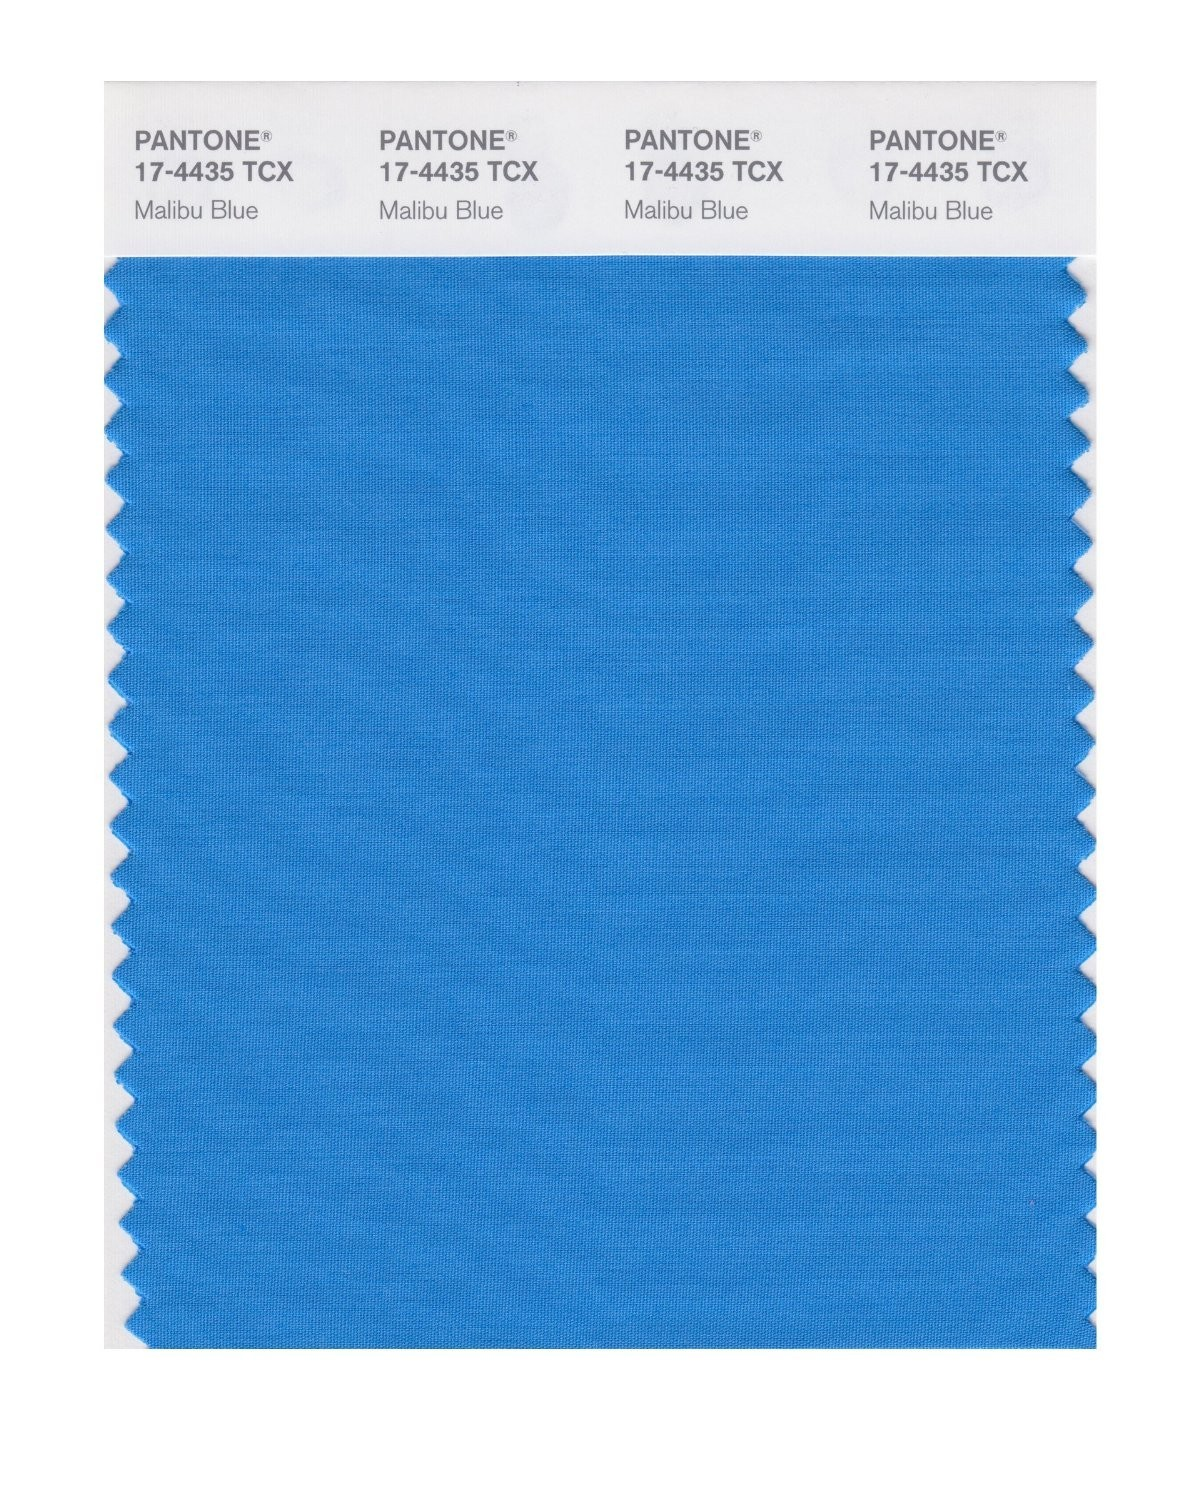 Pantone 17-4435 TCX Swatch Card Malibu Blue